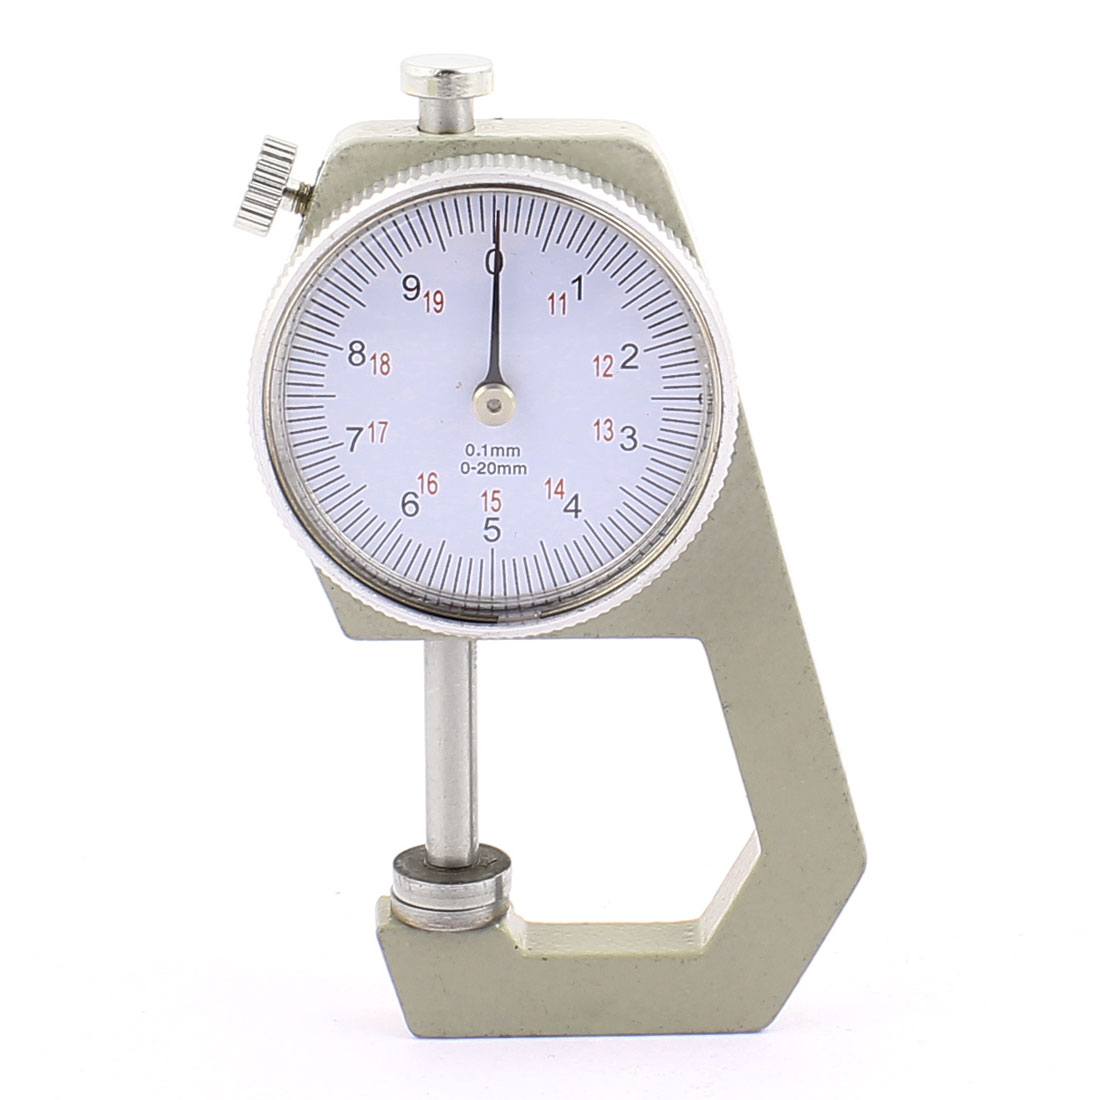 0 to 20mm Measuring Range 0.01mm Grad Round Dial Thickness Gauge C-04